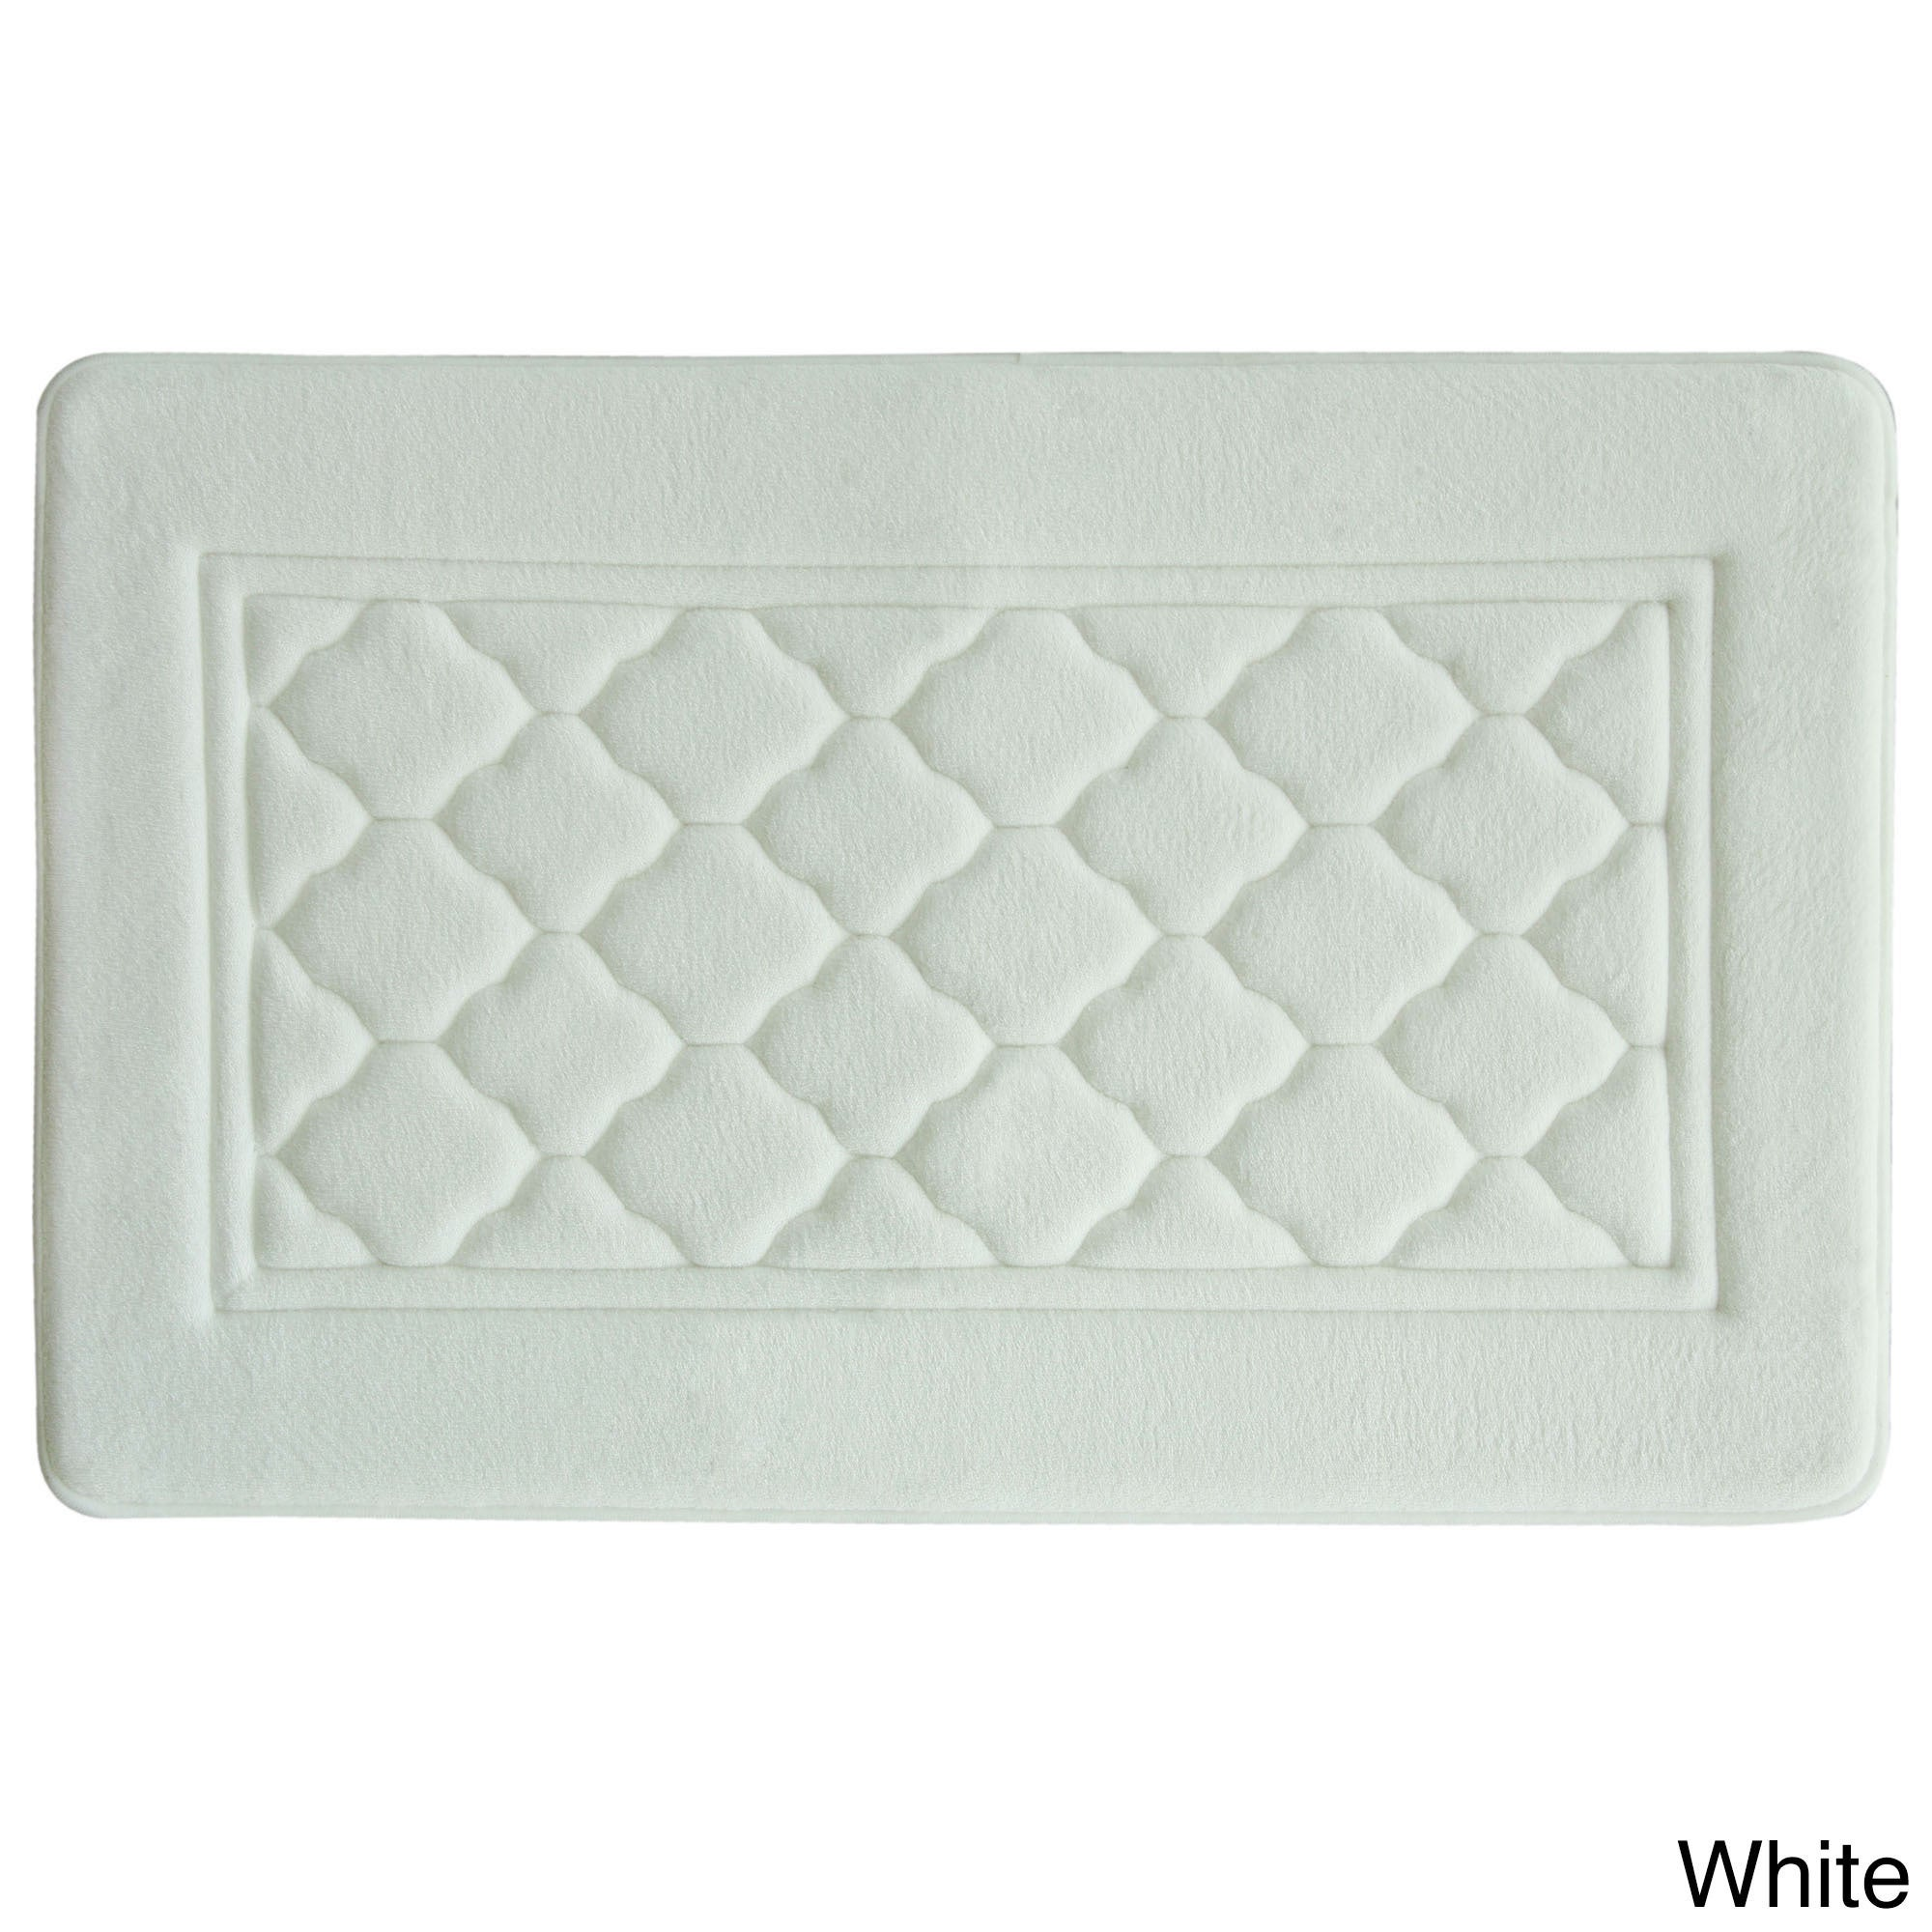 design foam jcpenney for white bathtub bathroom piece set scandinavian sets cool memory dark with your bed rug bath